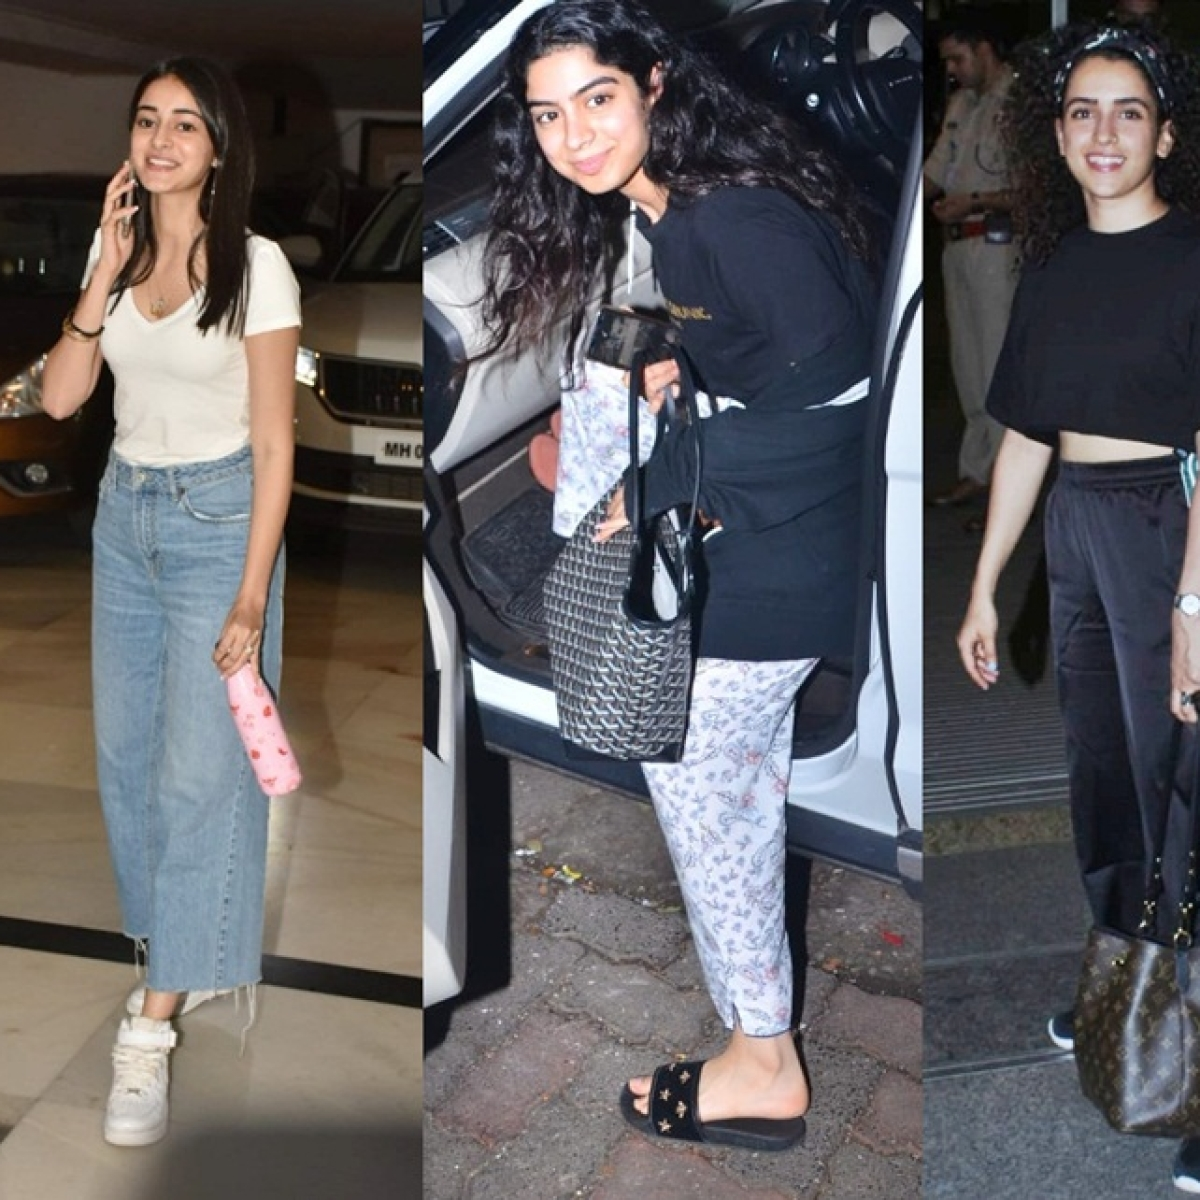 Have you seen these pictures of Ananya Panday, Khushi Kapoor and others?